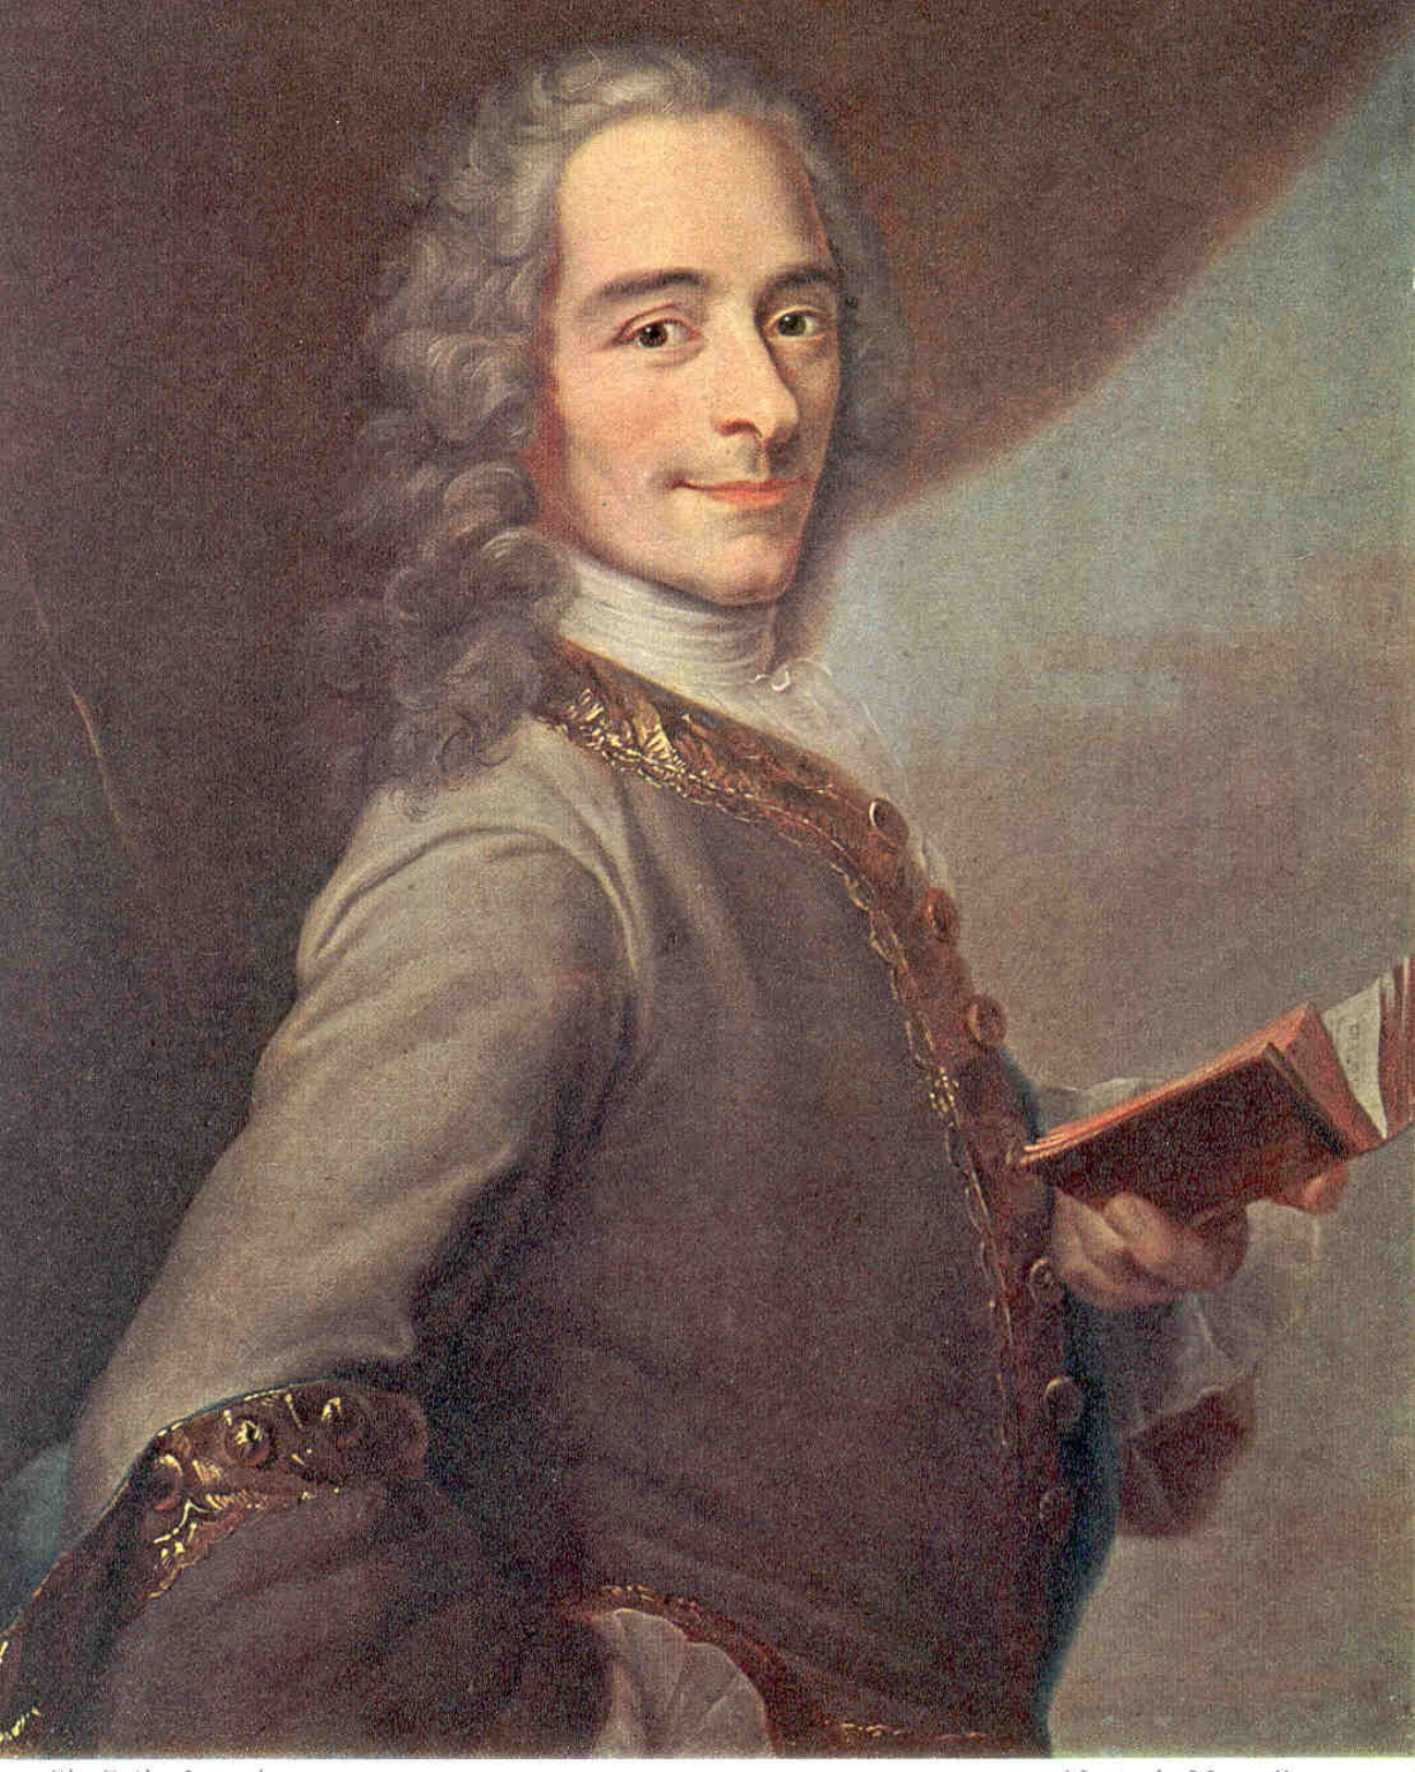 a review of candide by voltaire Introduction: what voltaire's candide can teach us about life this post was inspired by insead's 'what do voltaire and social media have in common' candide by voltaire is one of those books that's a staple on the lists of must-read books (review of candide by voltaire.